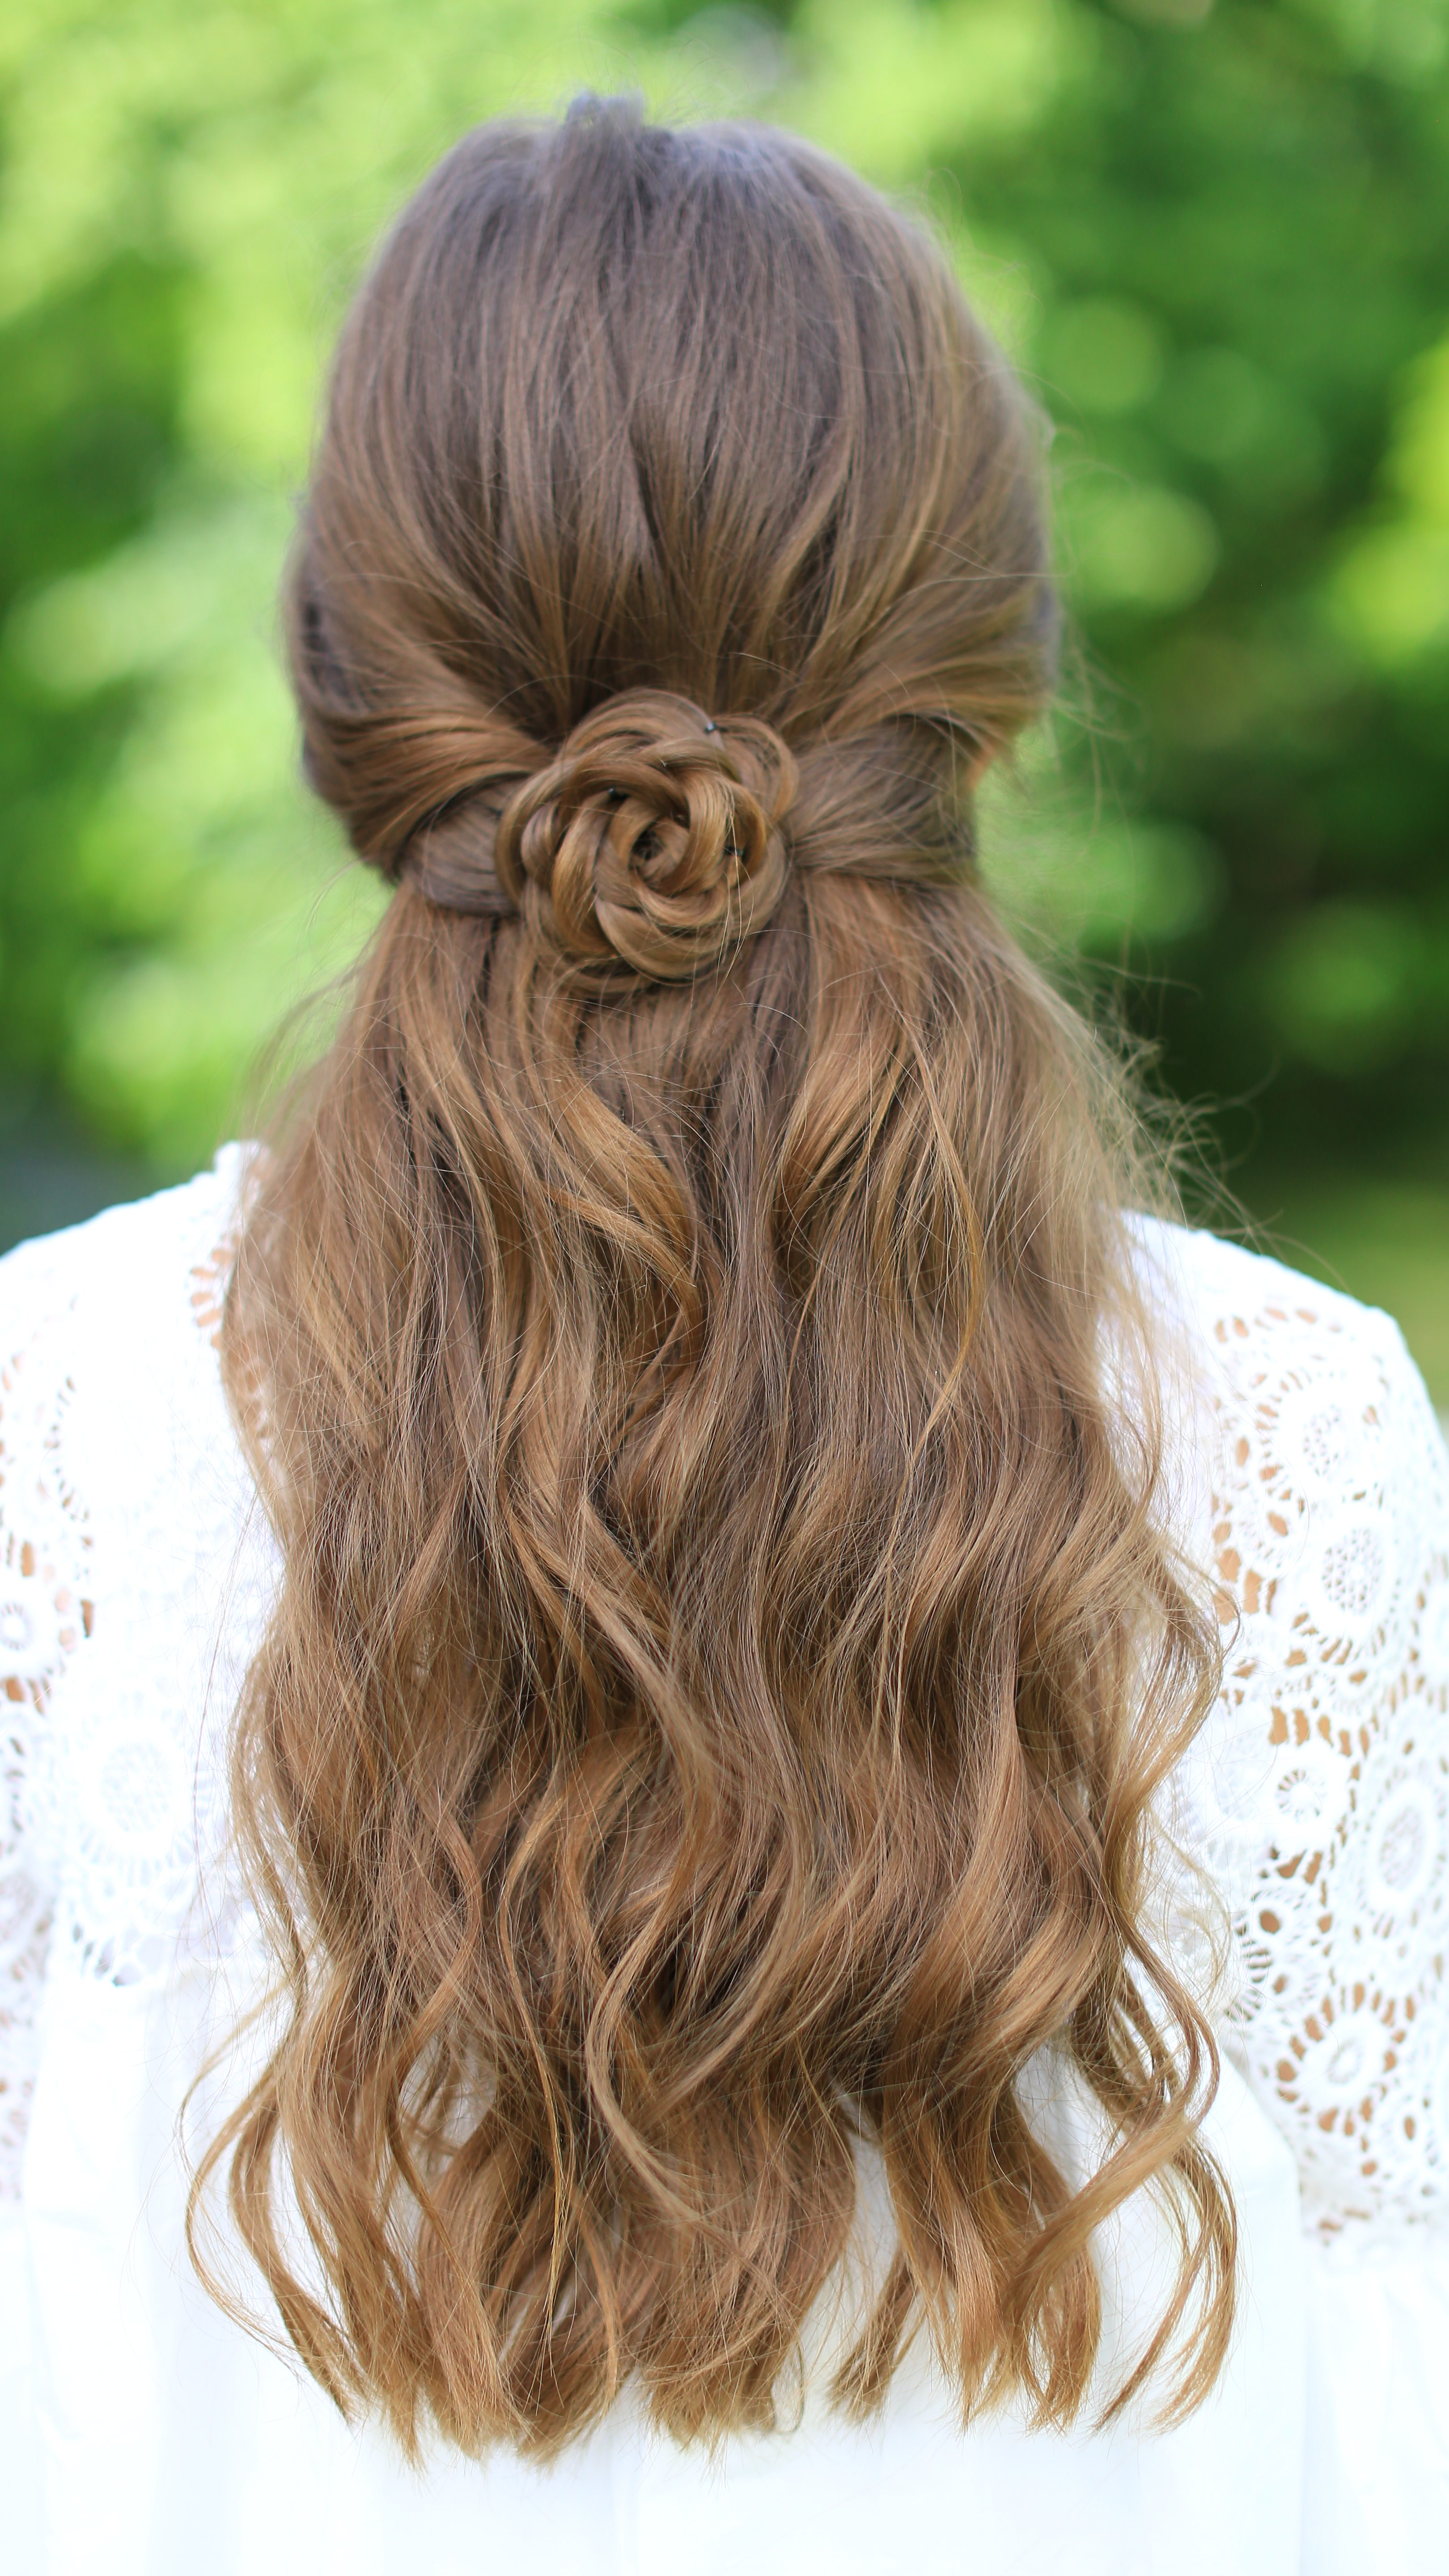 cute easy hair styles for girls rosette tieback hairstyles 7055 | DN0A9980 e1493679845882